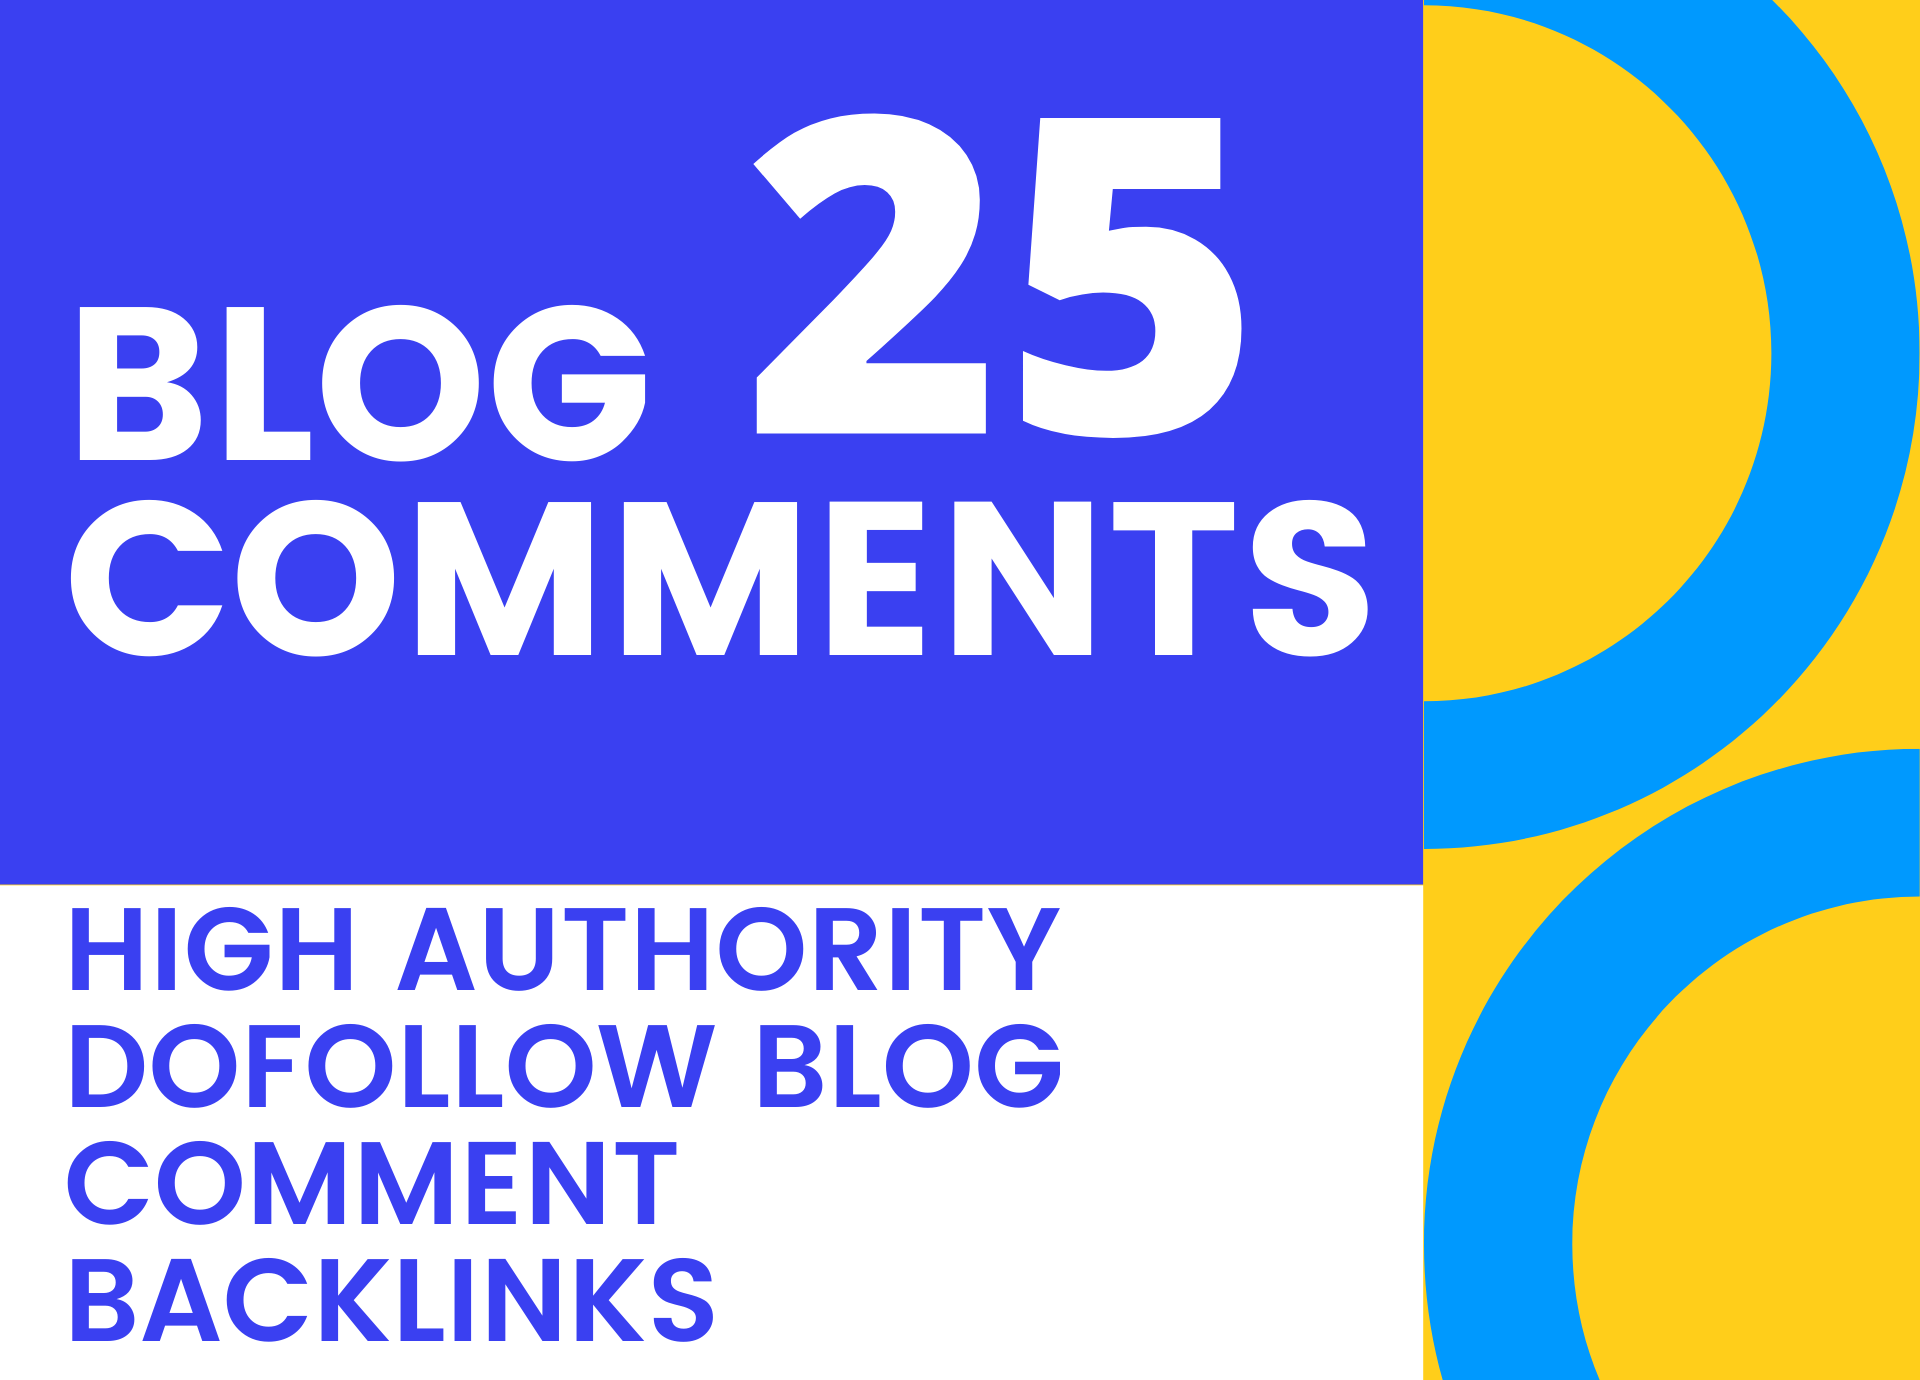 i will provide 25 high authority manual dofollow blog comments